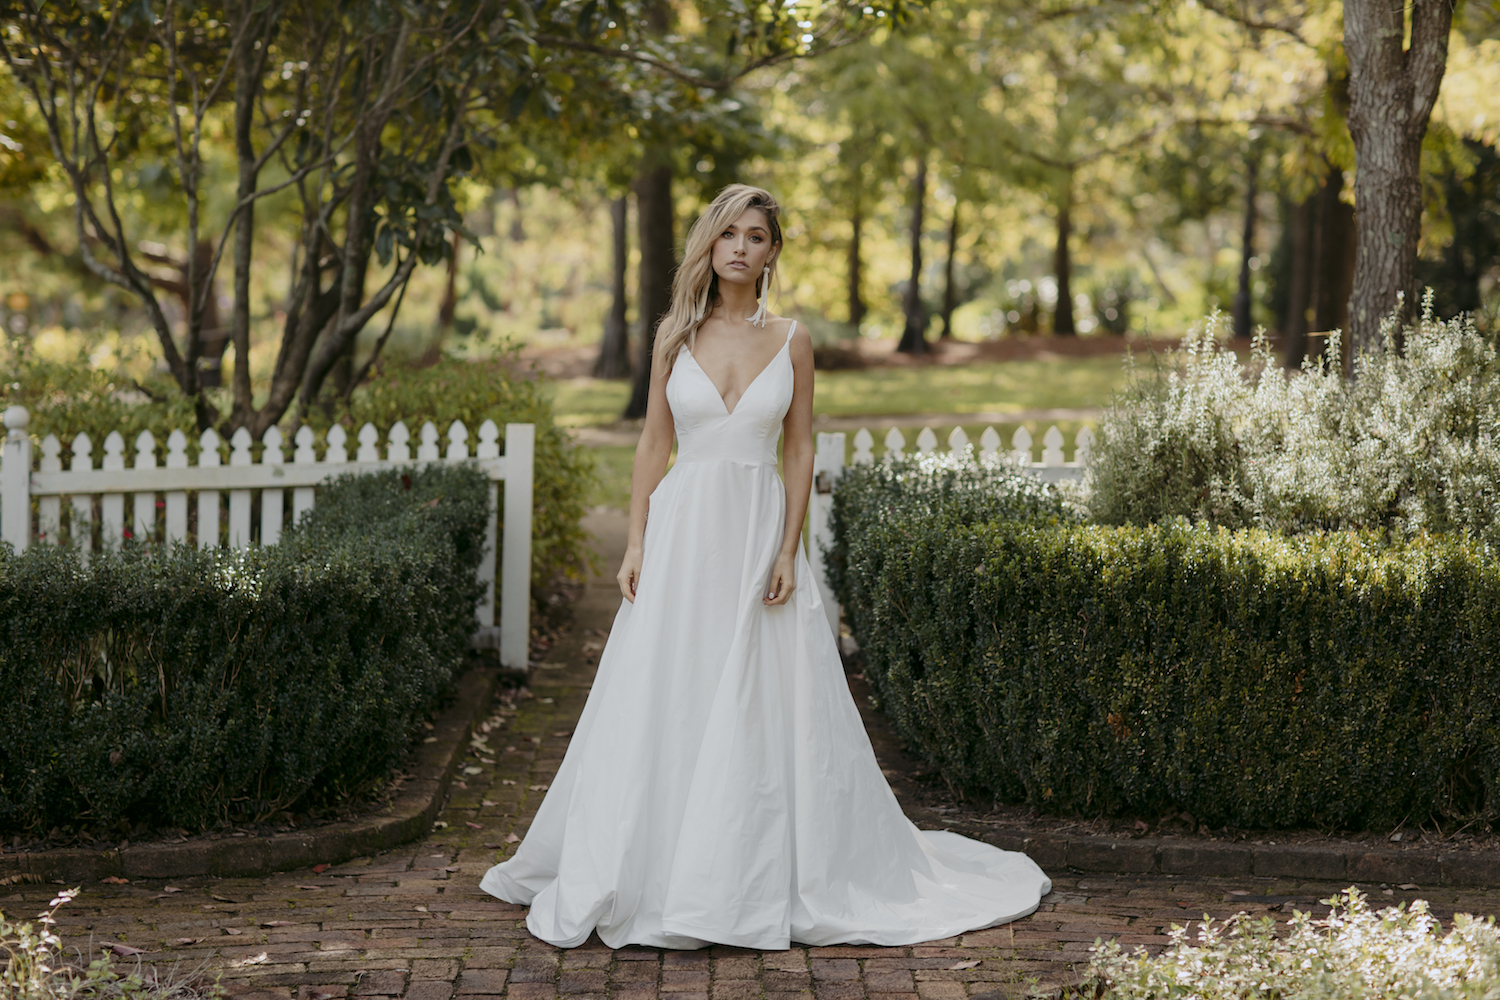 Duniway wedding dress by Kate McDonald featured on LOVE FIND CO.